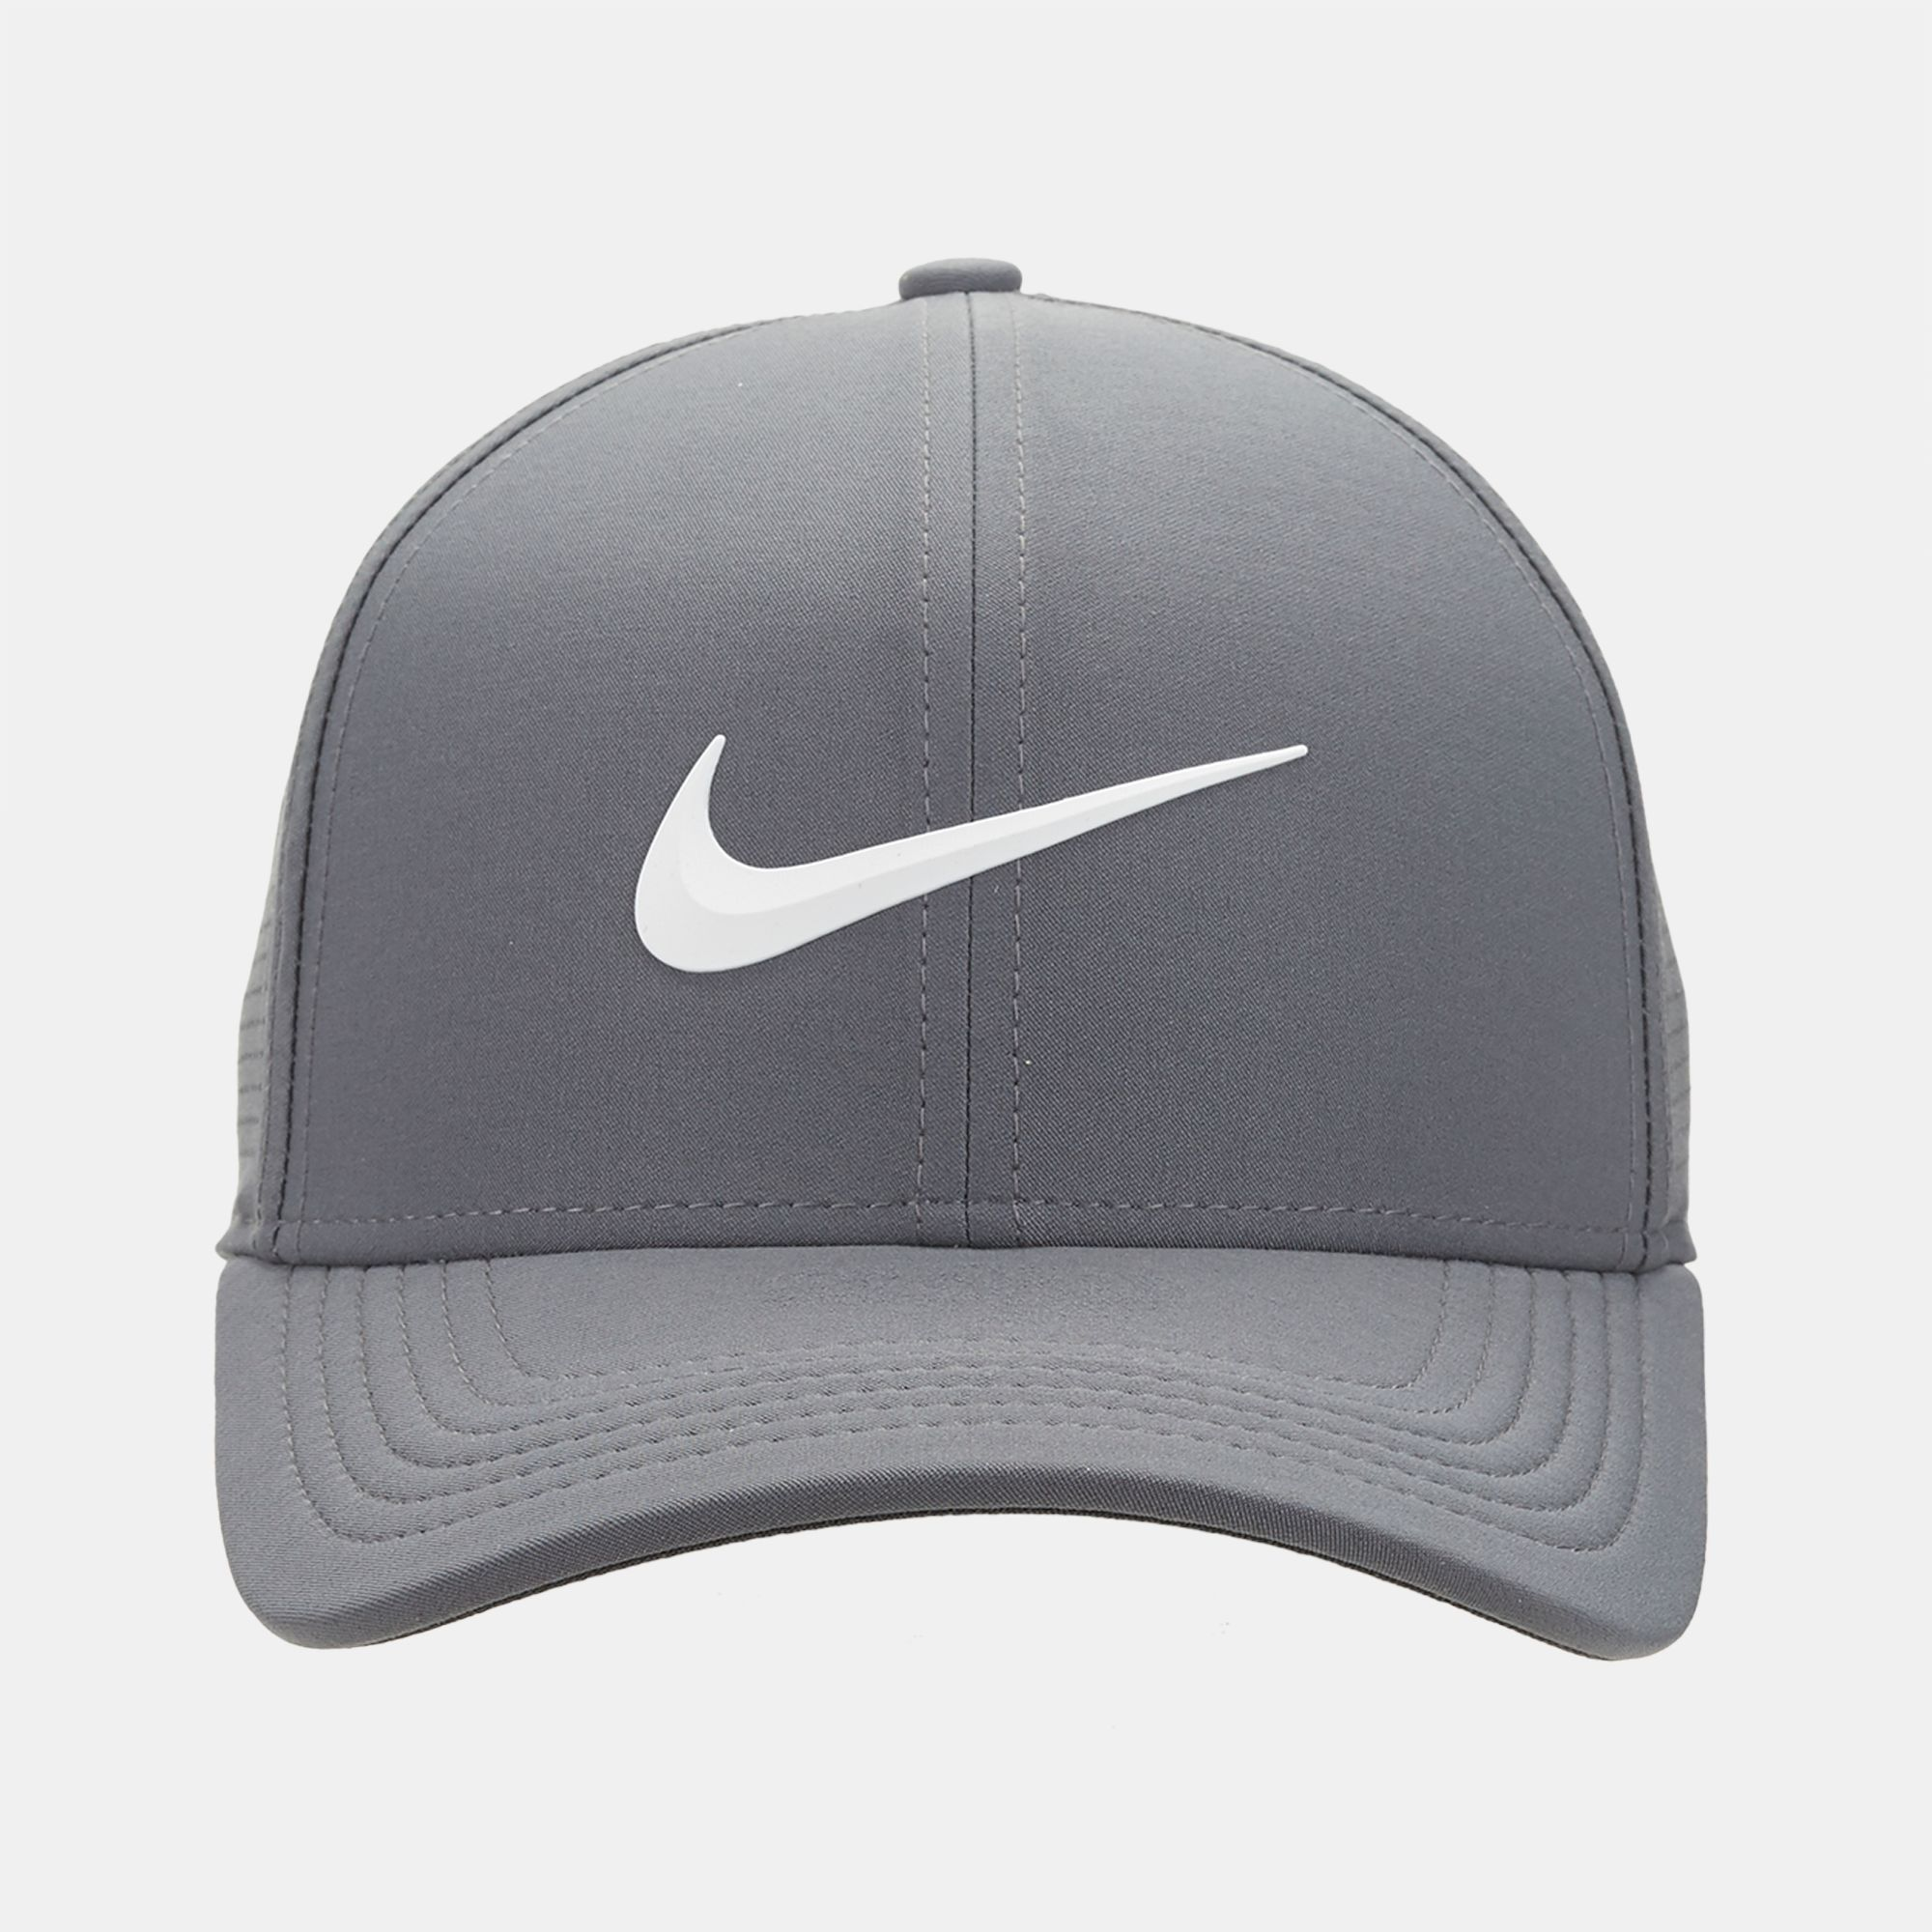 Shop Grey Nike Golf Aerobill Classic 99 Cap for Unisex by Nike Golf ... 9427f7857b3